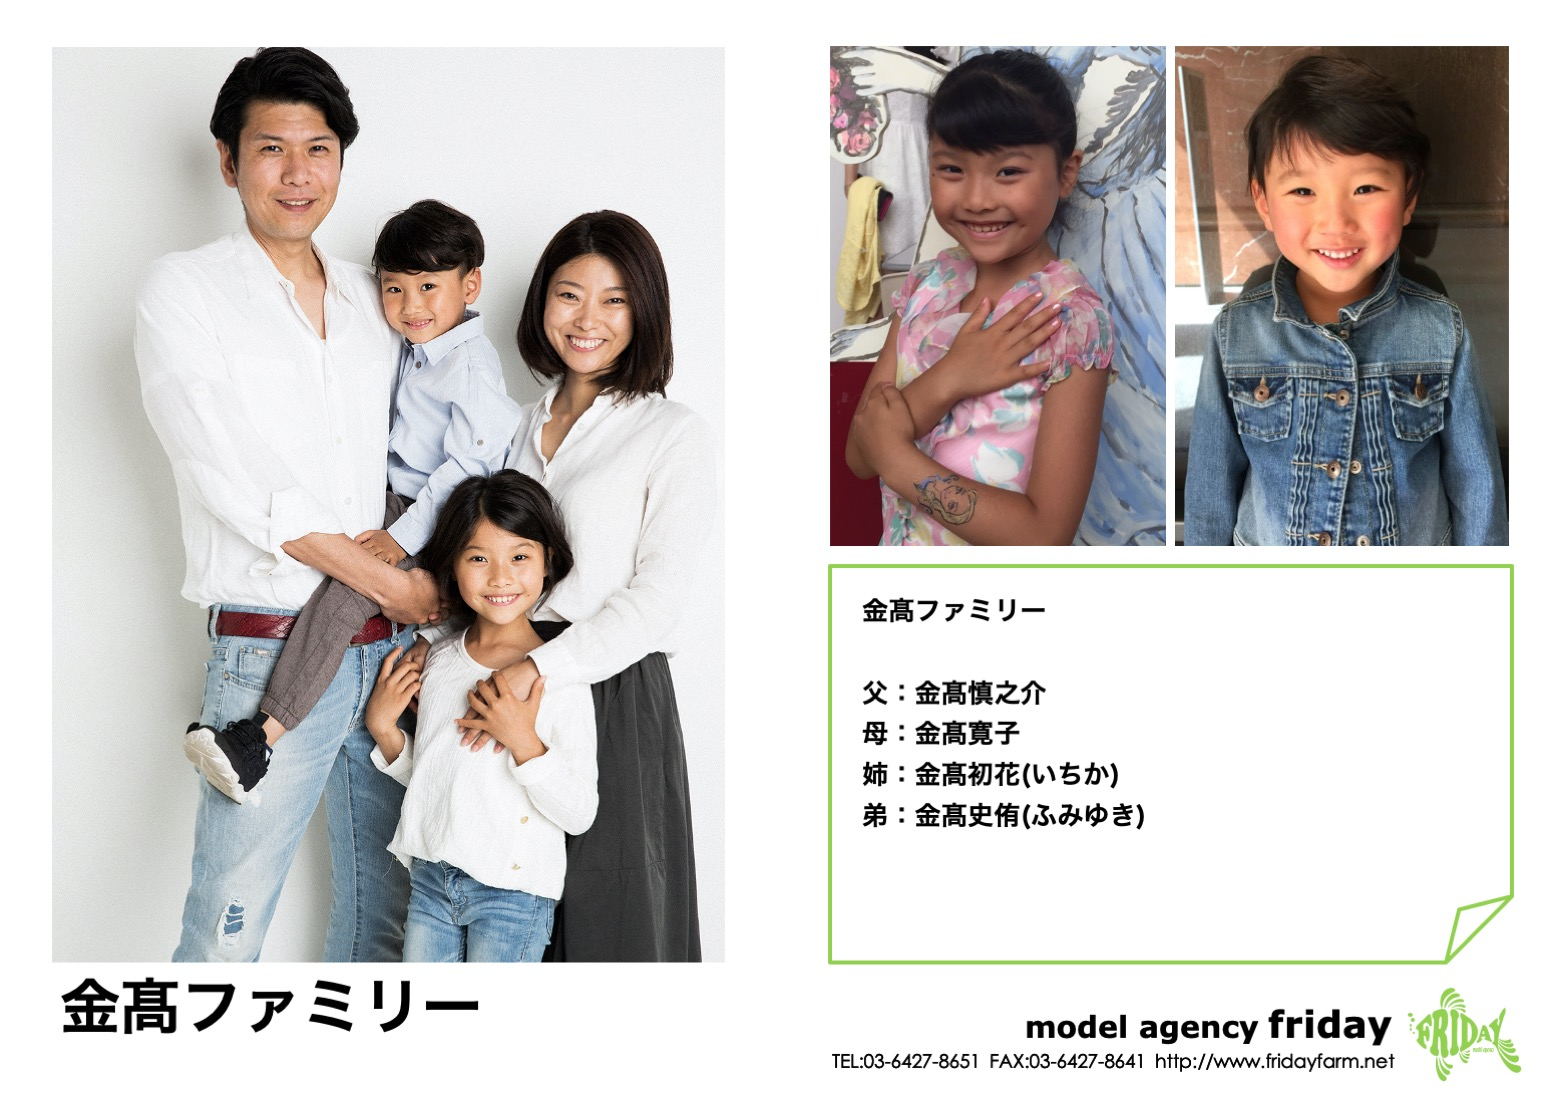 金高ファミリー - Kintaka Family | model agency friday